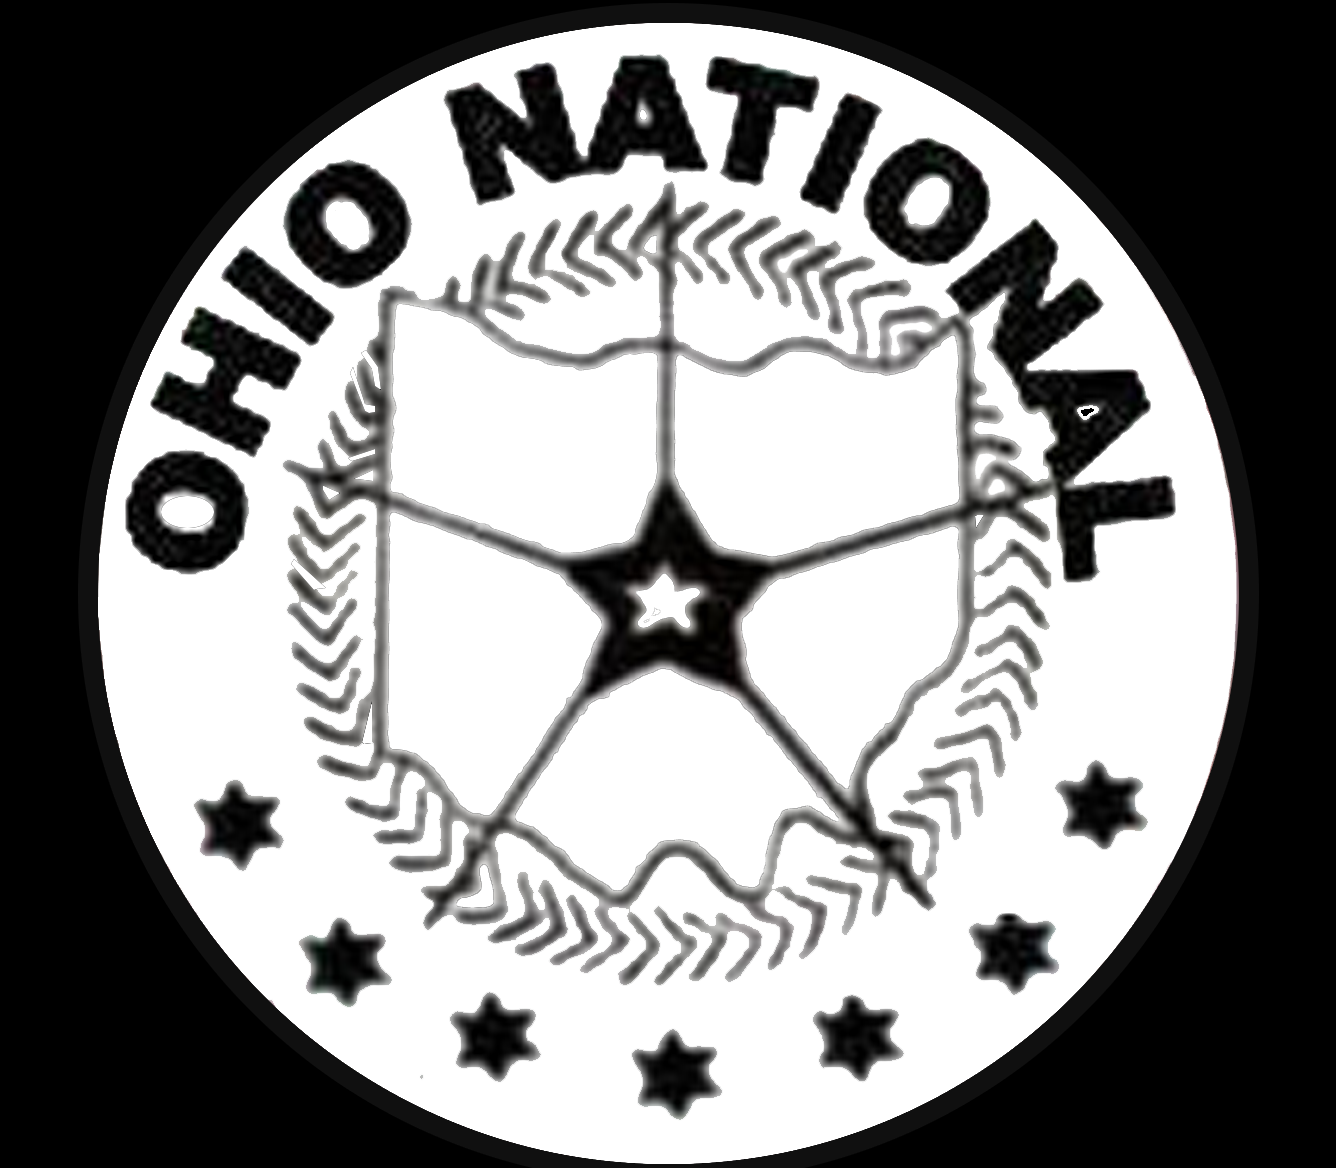 Ohio National Poultry Show